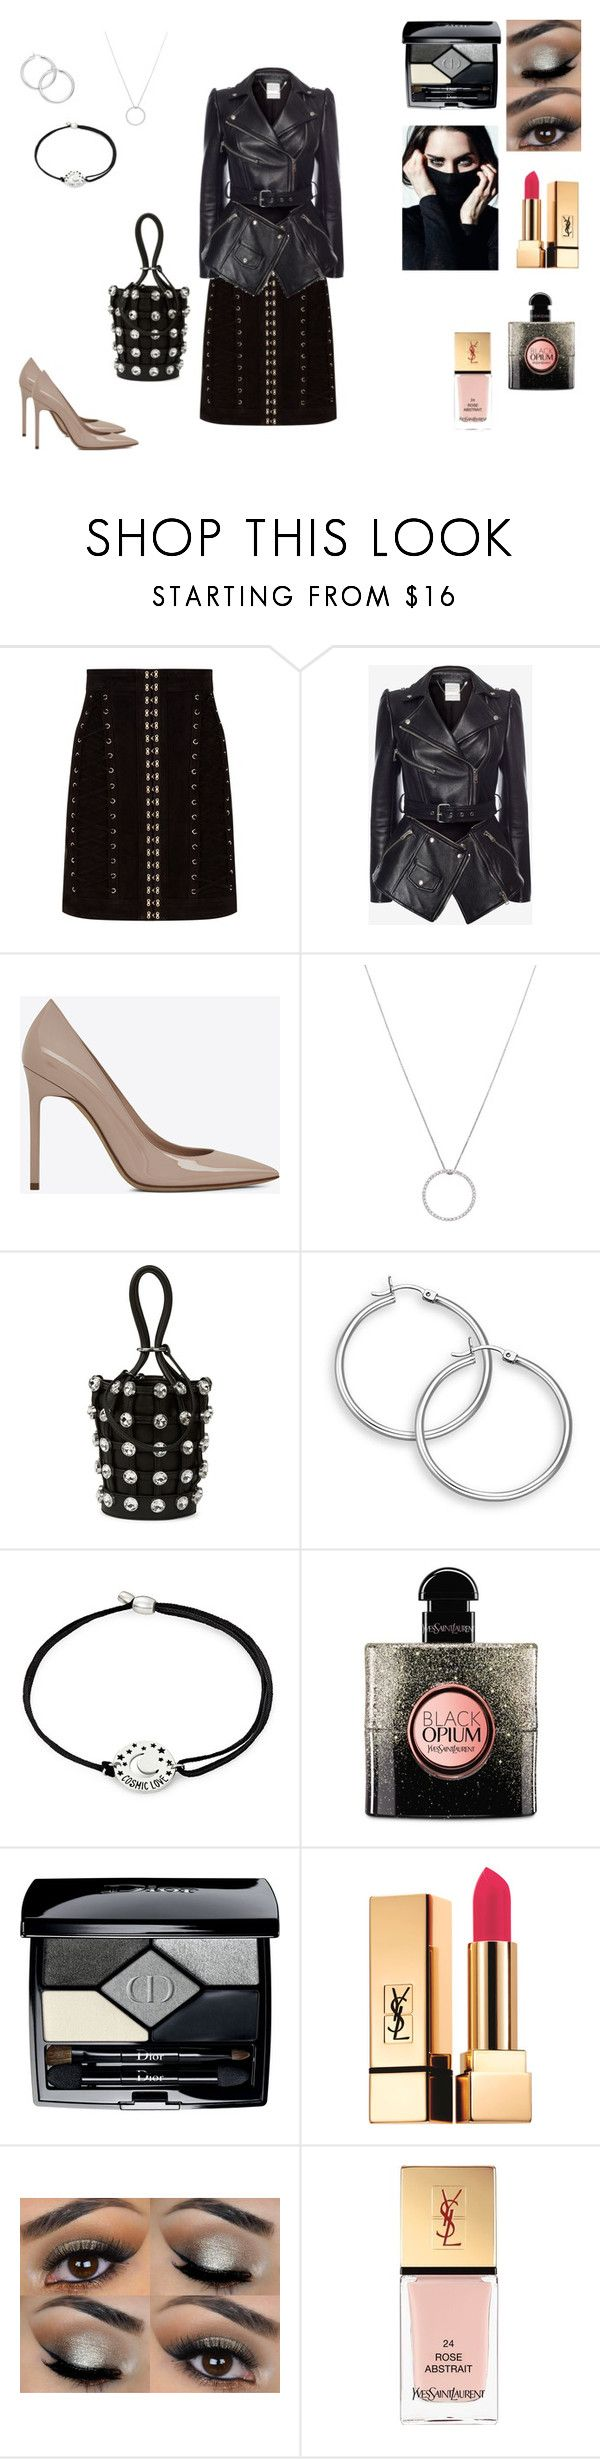 """Forever black"" by princessezouga ❤ liked on Polyvore featuring Balmain, Alexander McQueen, Yves Saint Laurent, Roberto Coin, Alexander Wang, Alex and Ani and Christian Dior"